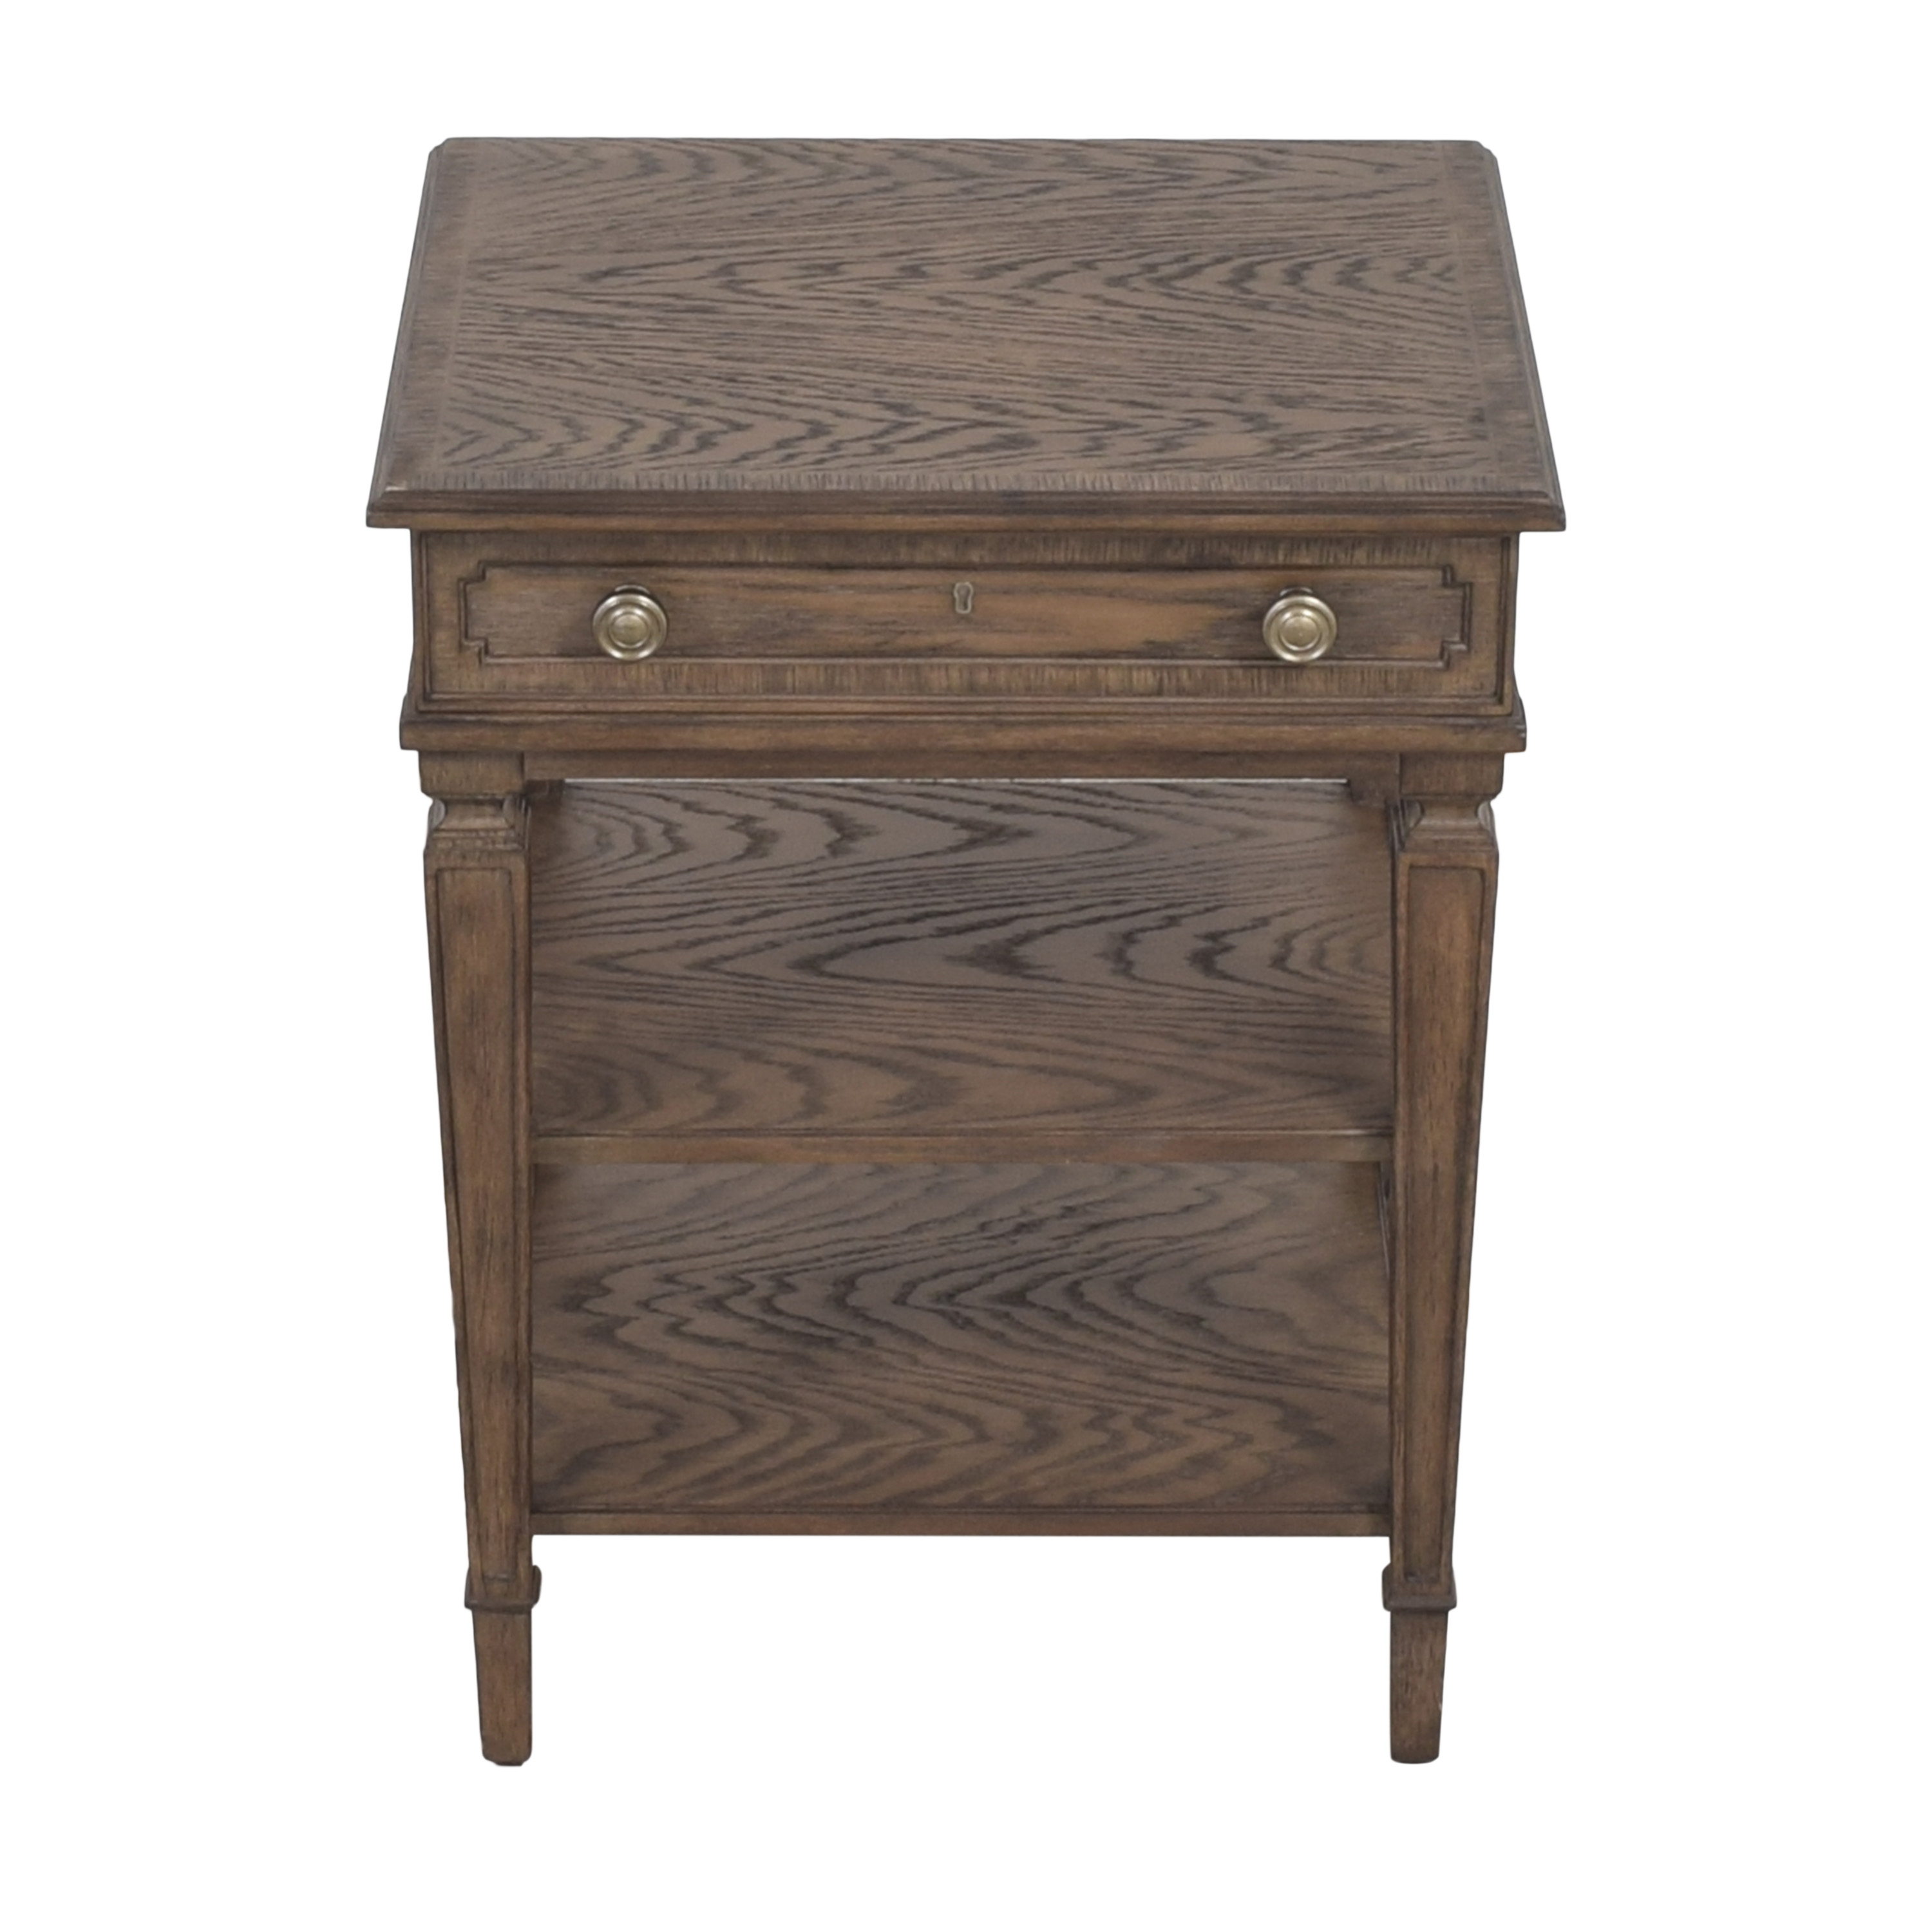 Stanley Furniture Stanley Furniture Wethersfield Estate Single Drawer End Table nyc